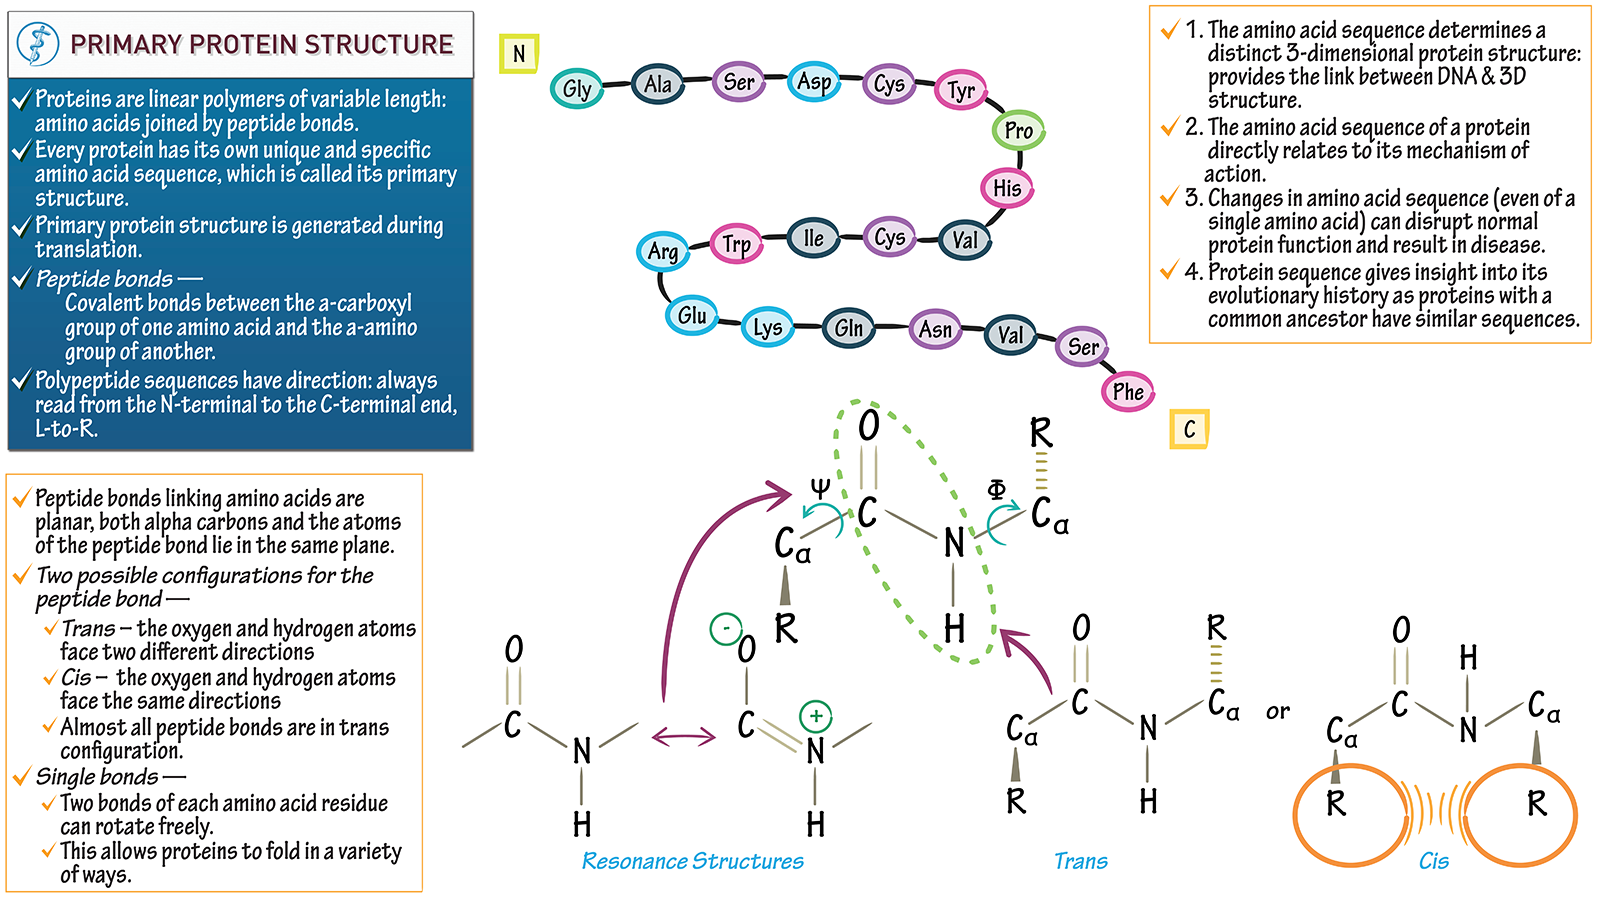 Protein molecule diagram dna electrical drawing wiring diagram cell biology primary protein structure draw it to know it rh drawittoknowit com show a diagram of a dna molecule dna molecule drawing ccuart Gallery